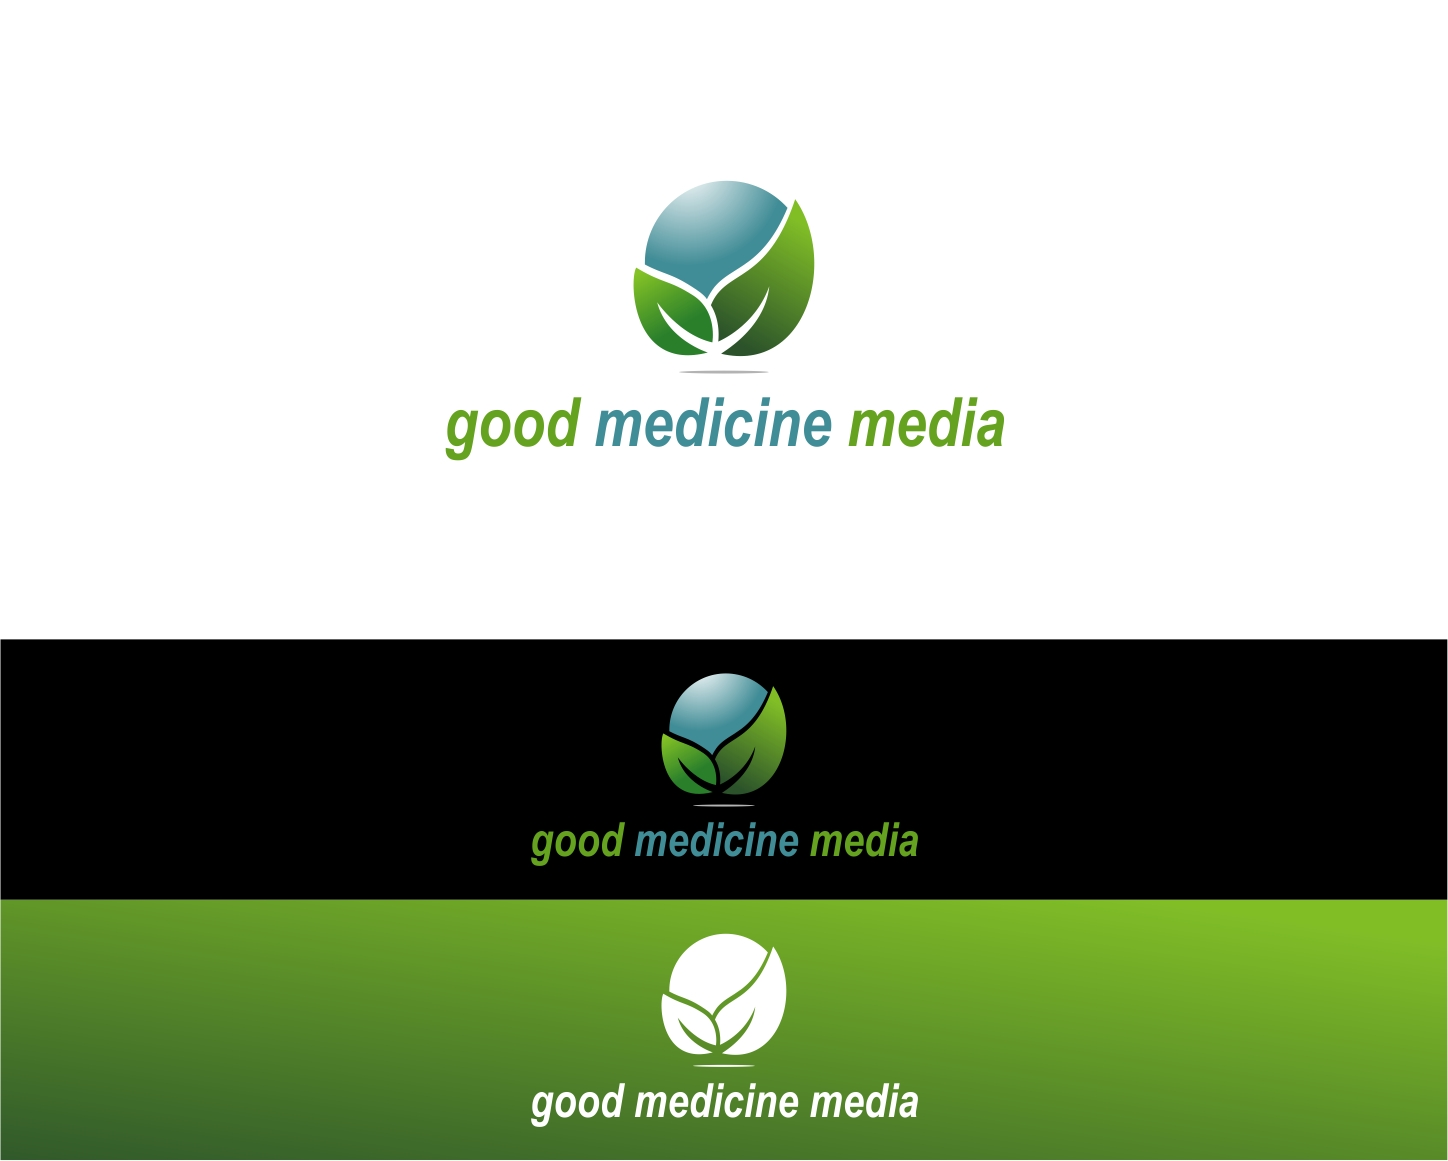 Logo Design by haidu - Entry No. 209 in the Logo Design Contest Good Medicine Media Logo Design.